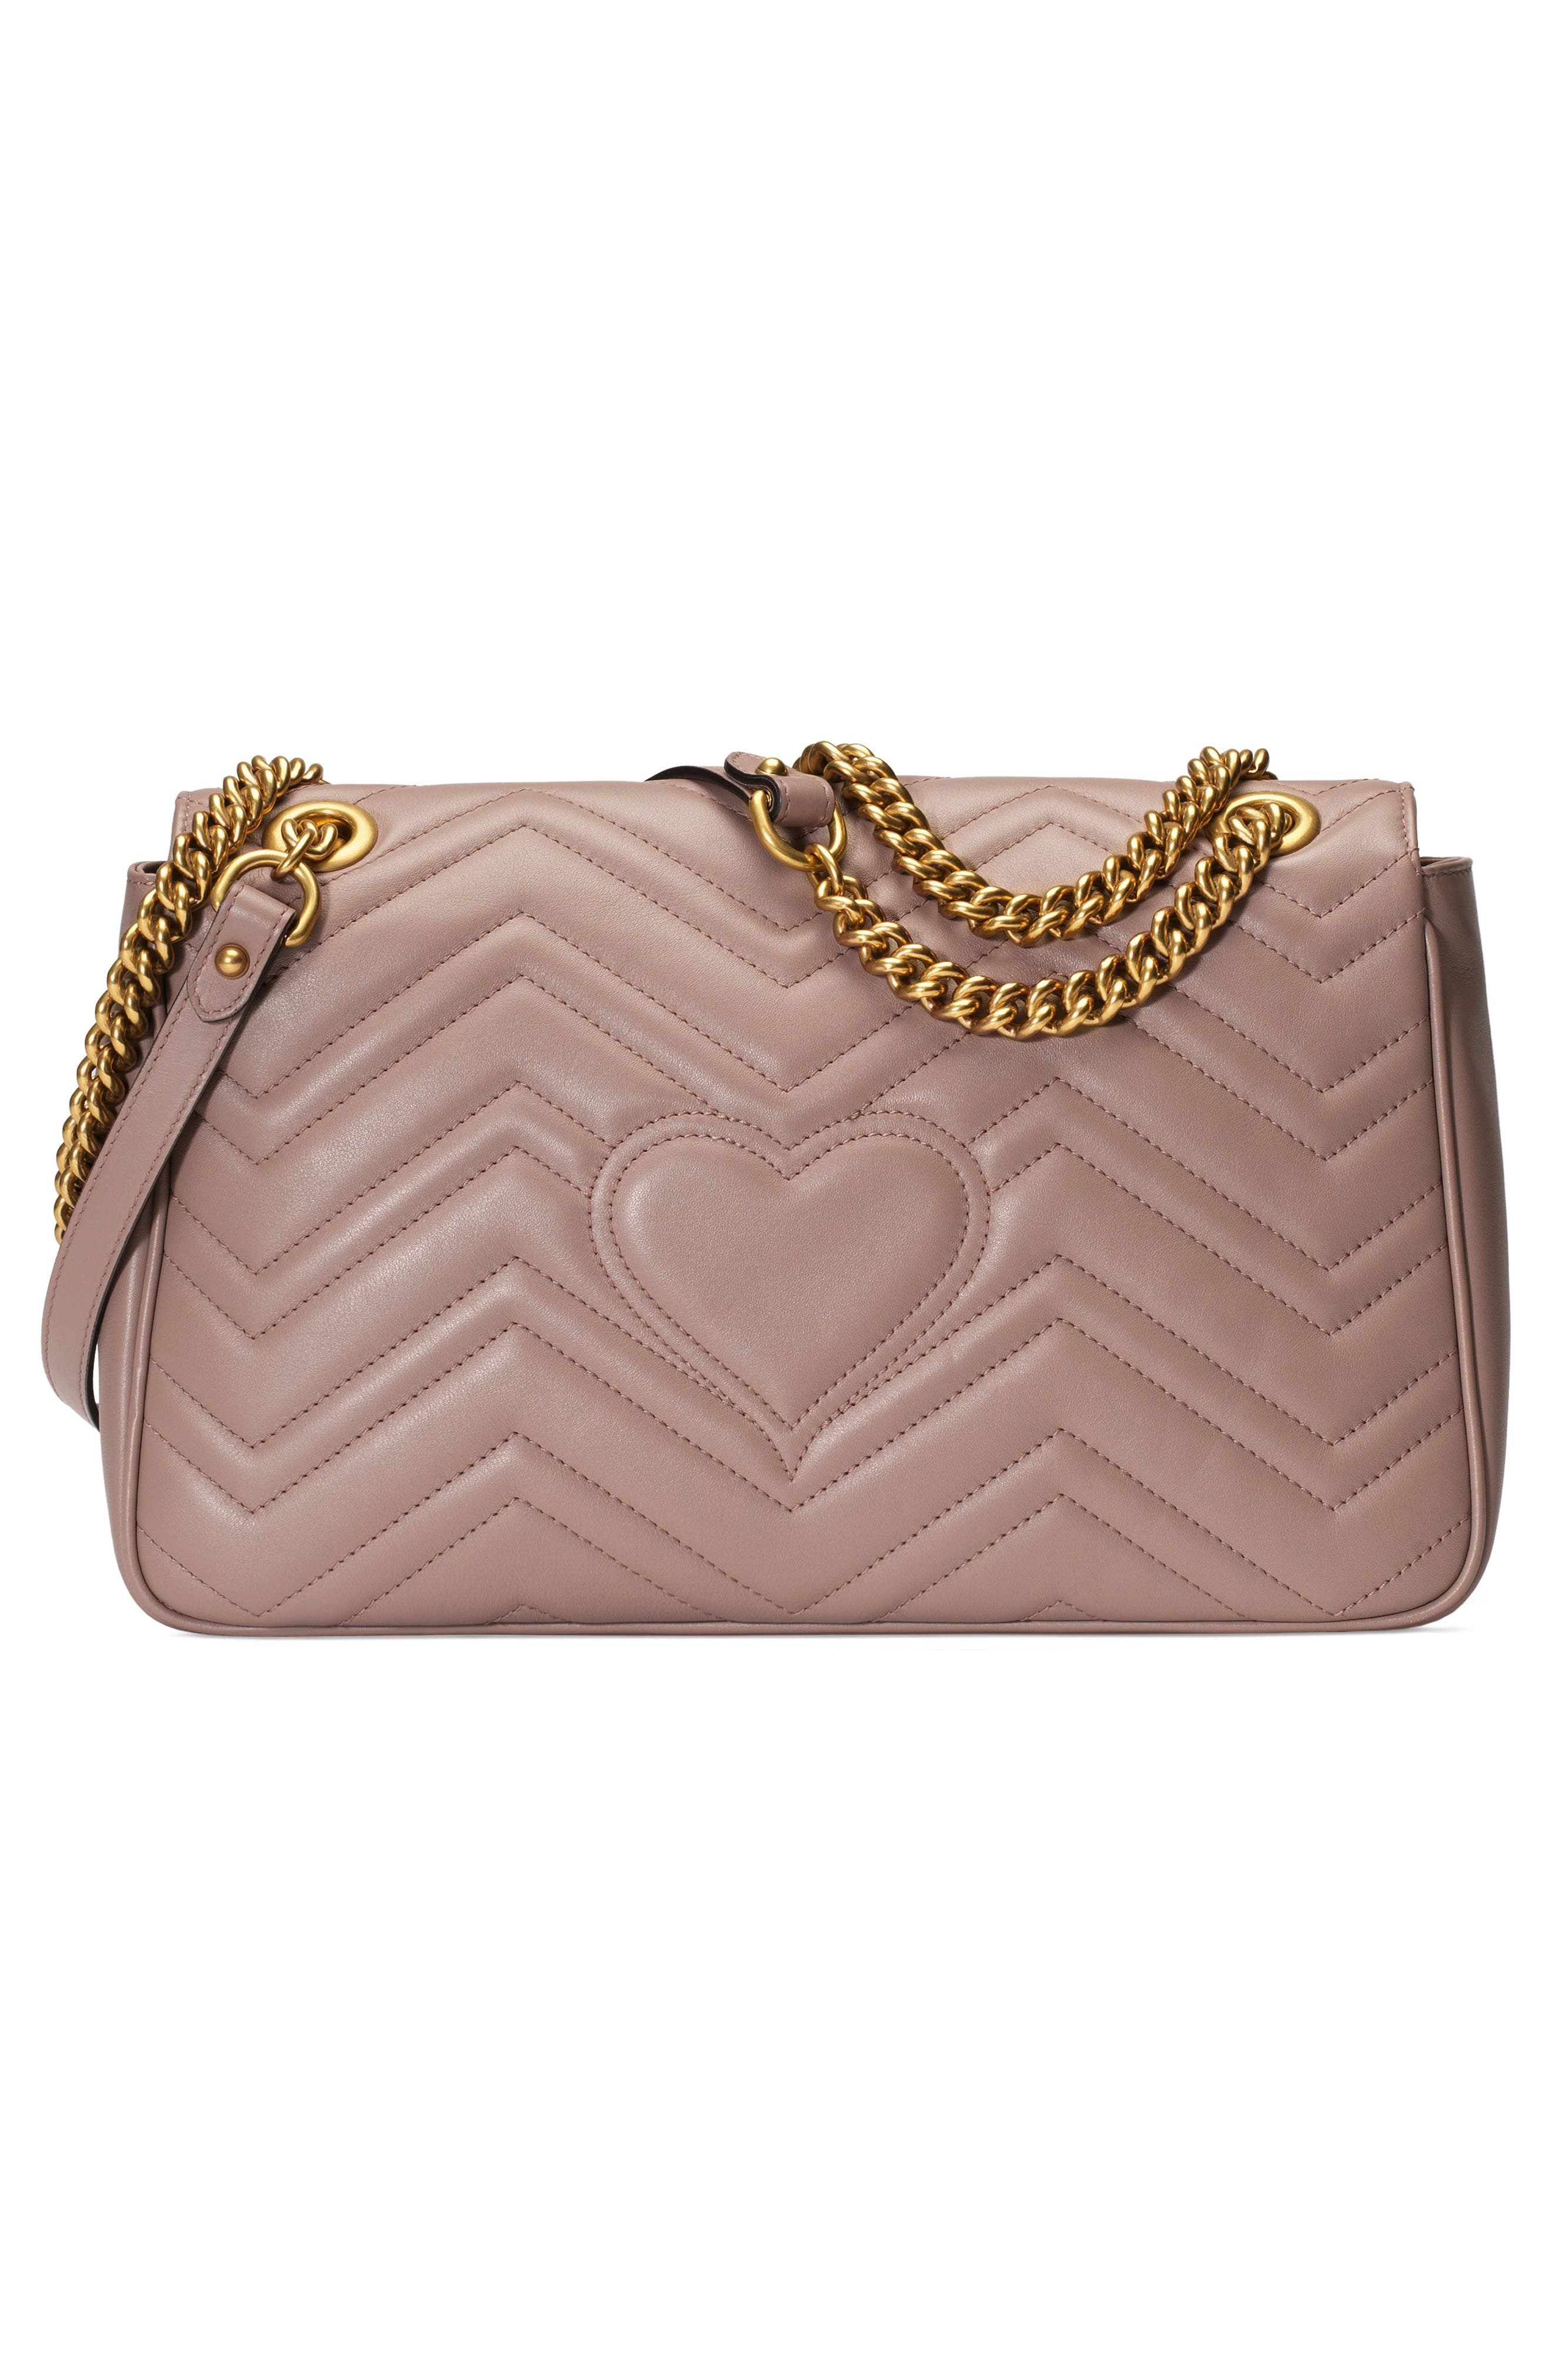 Medium GG Marmont 2.0 Matelassé Leather Shoulder Bag,                             Alternate thumbnail 2, color,                             PORCELAIN ROSE/ PORCELAIN ROSE